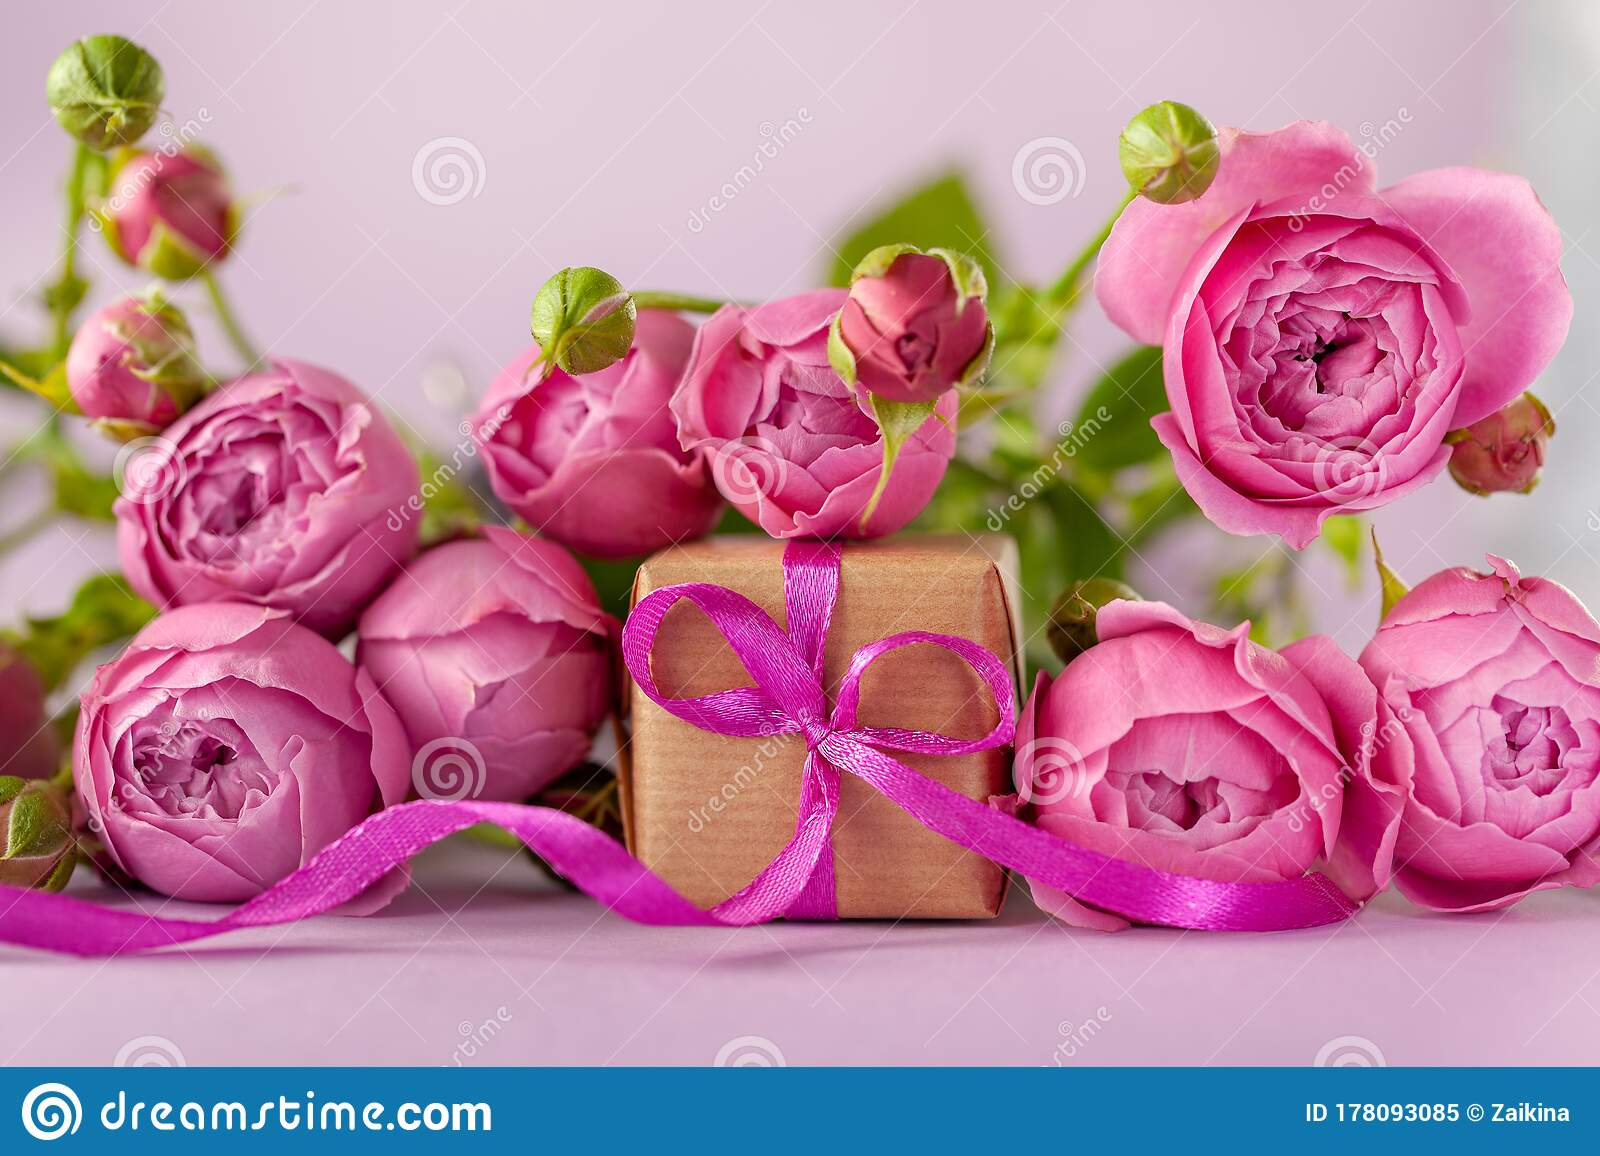 Gift Present Box With Beautiful Pink Flowers Roses Bouquet Concept Mother S Day Happy Birthday Stock Image Image Of Decoration Bright 178093085